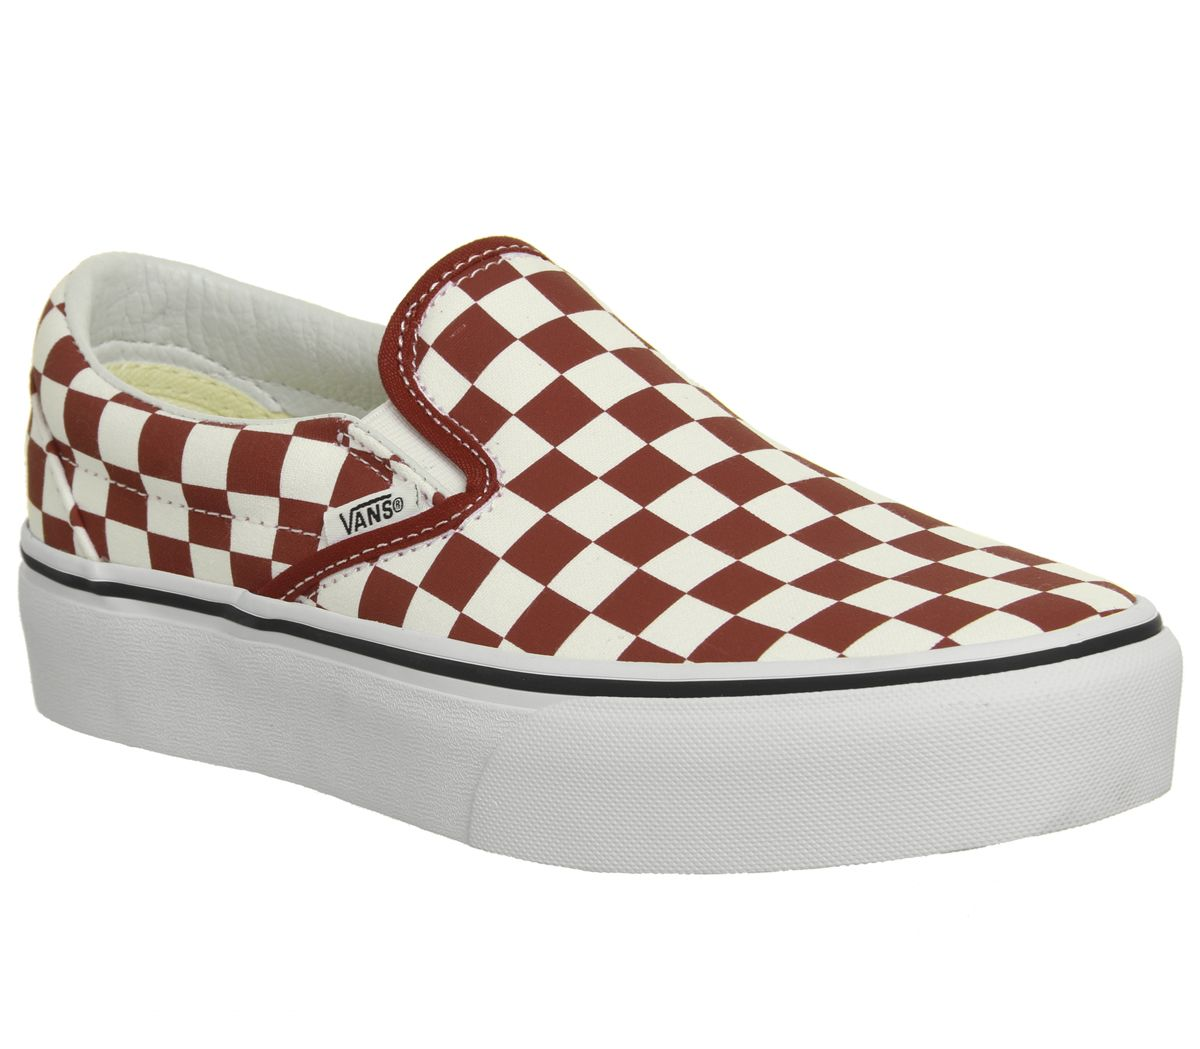 c07b4dc204f7 Vans Classic Slip On Platform Trainers Red White Checkerboard - Hers ...